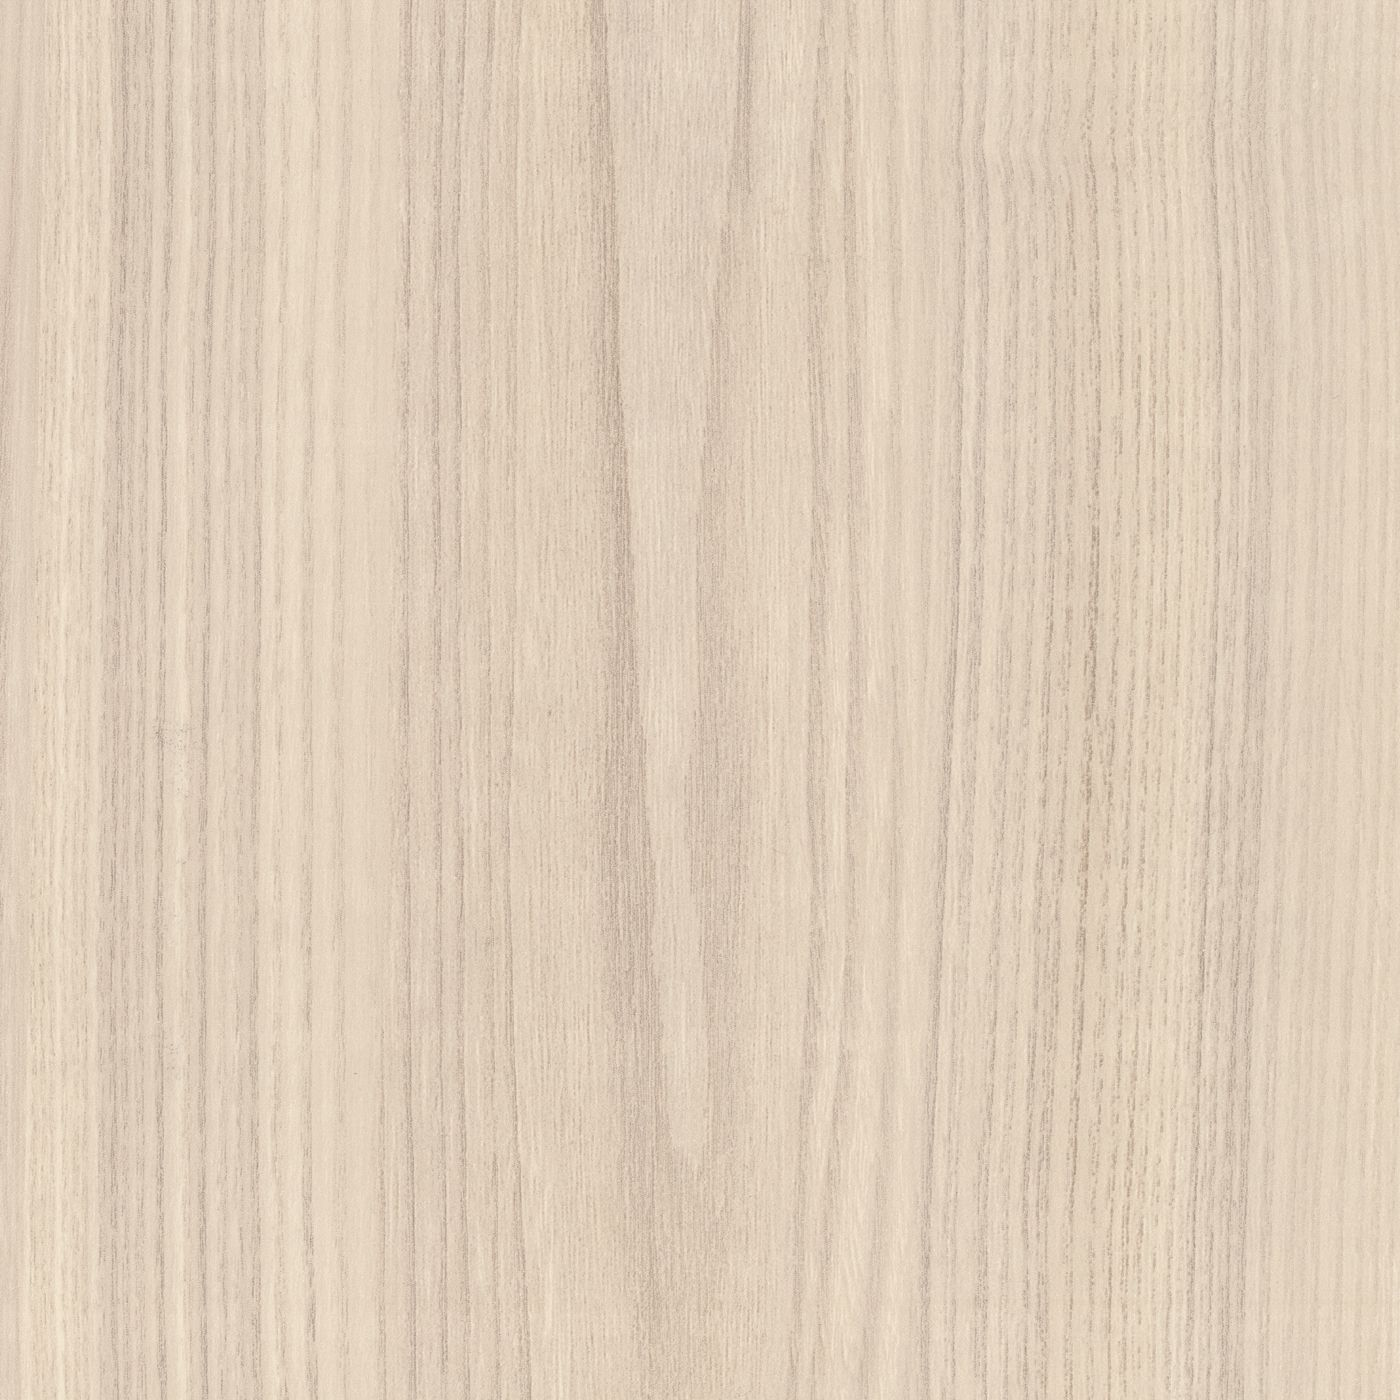 Ash wood color for interior packaging pinterest